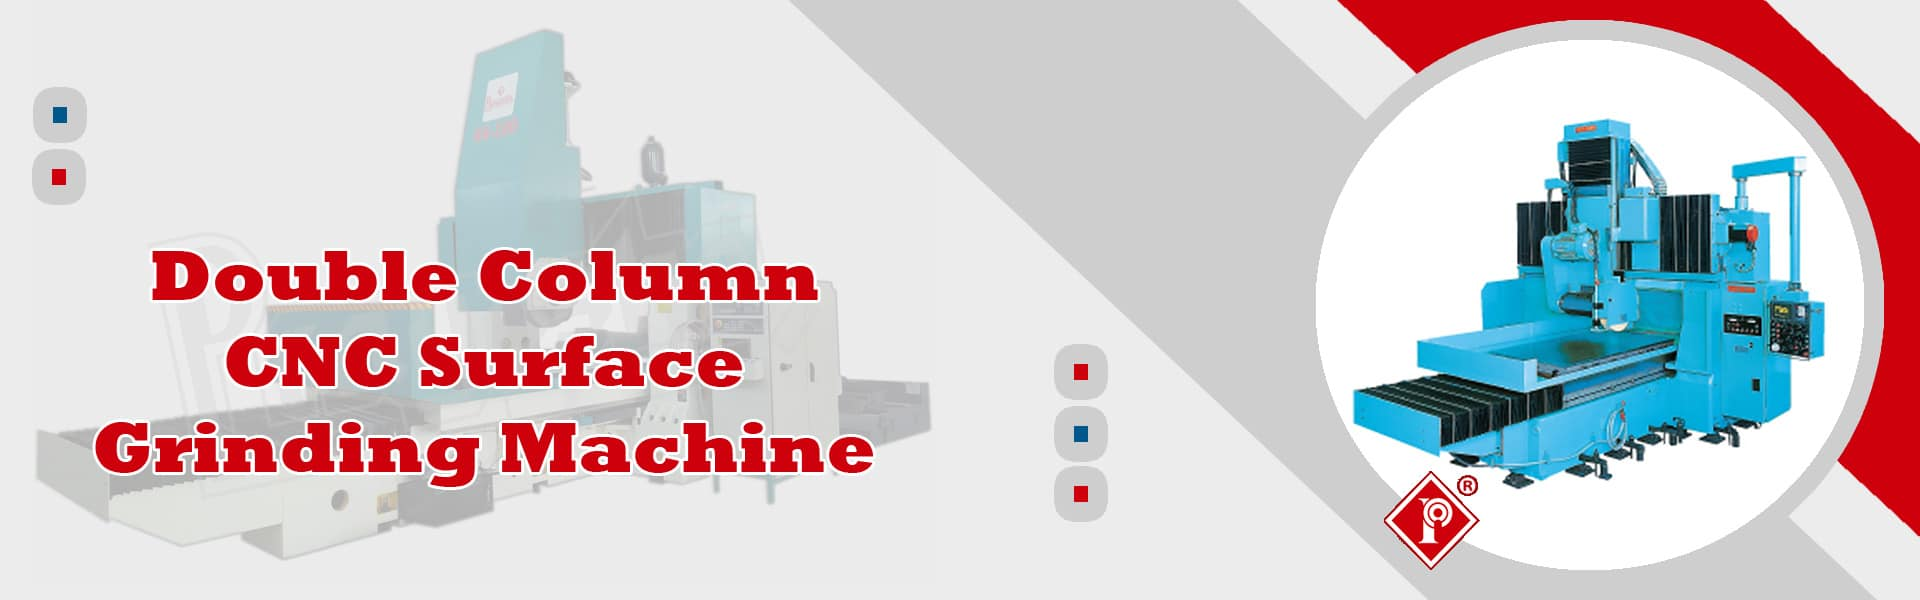 Surface-Grinding-Machine-Banner1